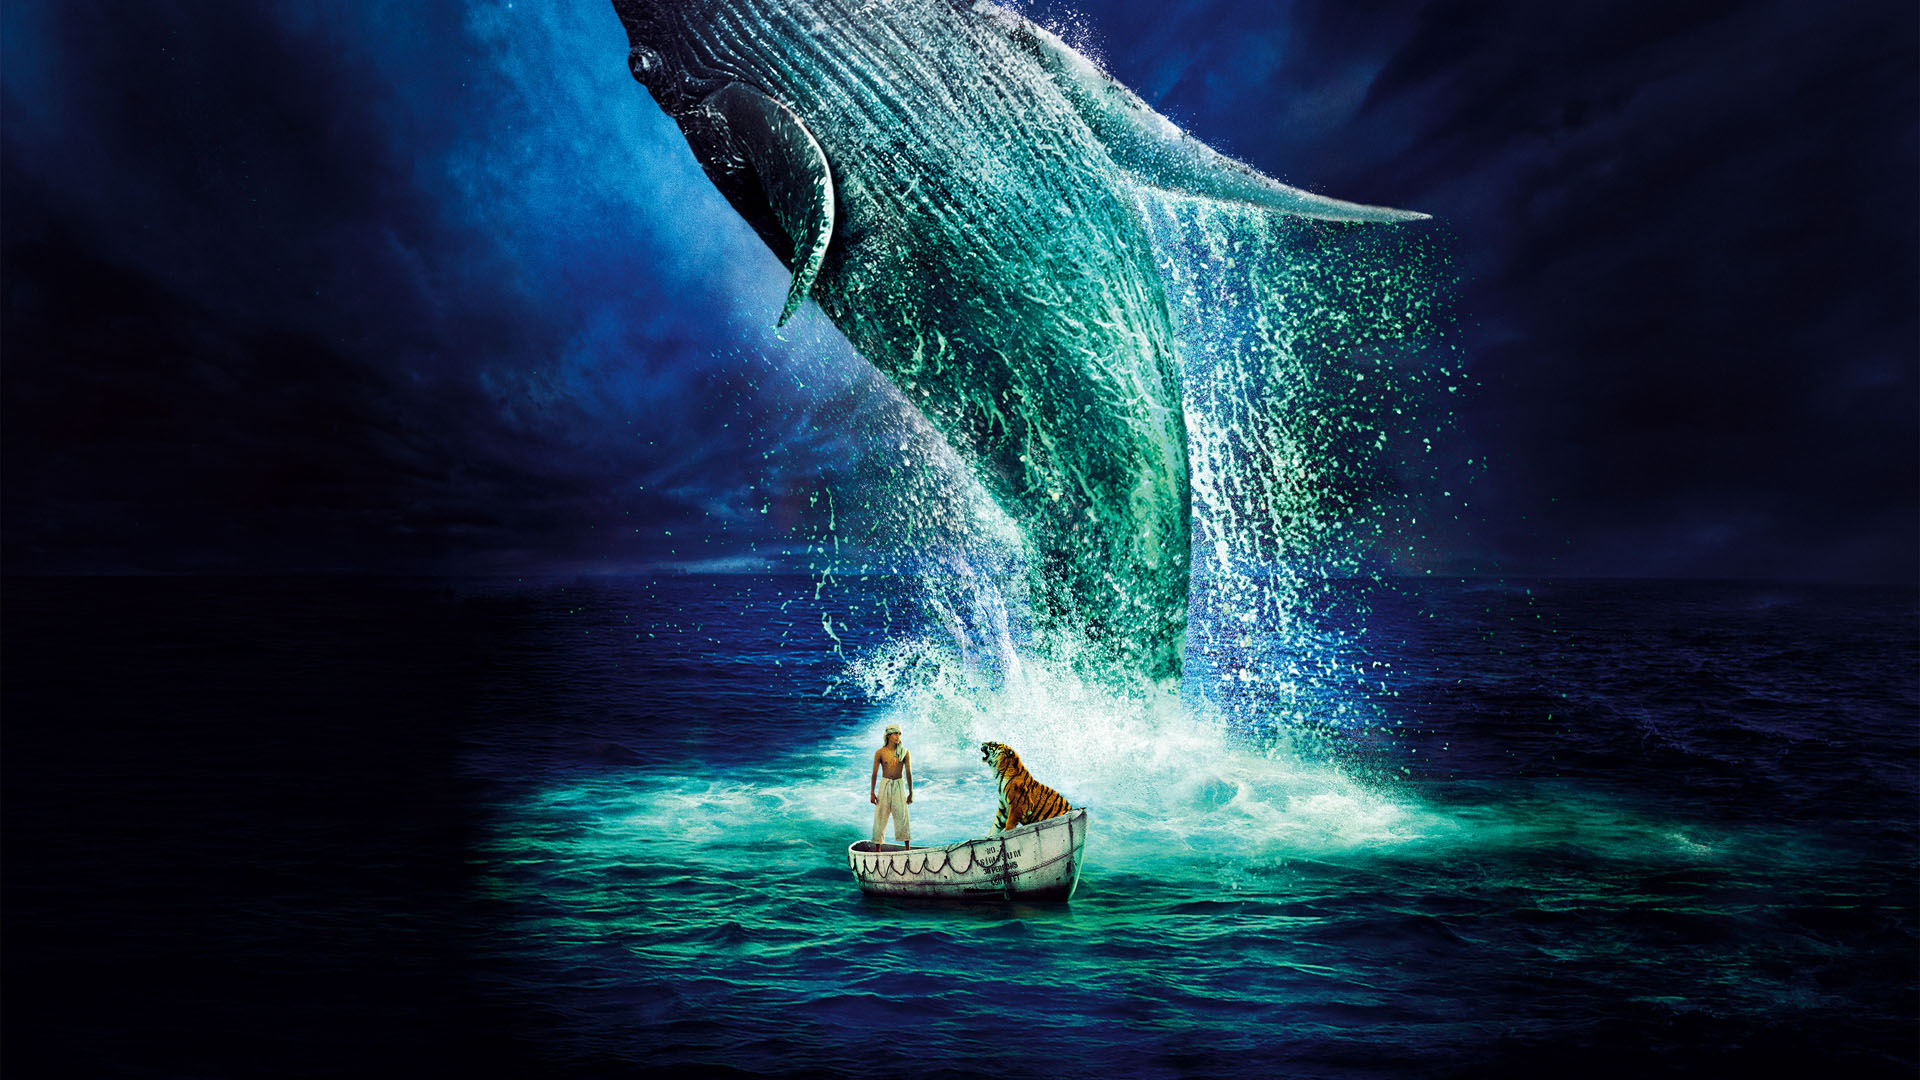 Life of pi tiger tigers whale whales wallpaper 1920x1080 for Life of pi family